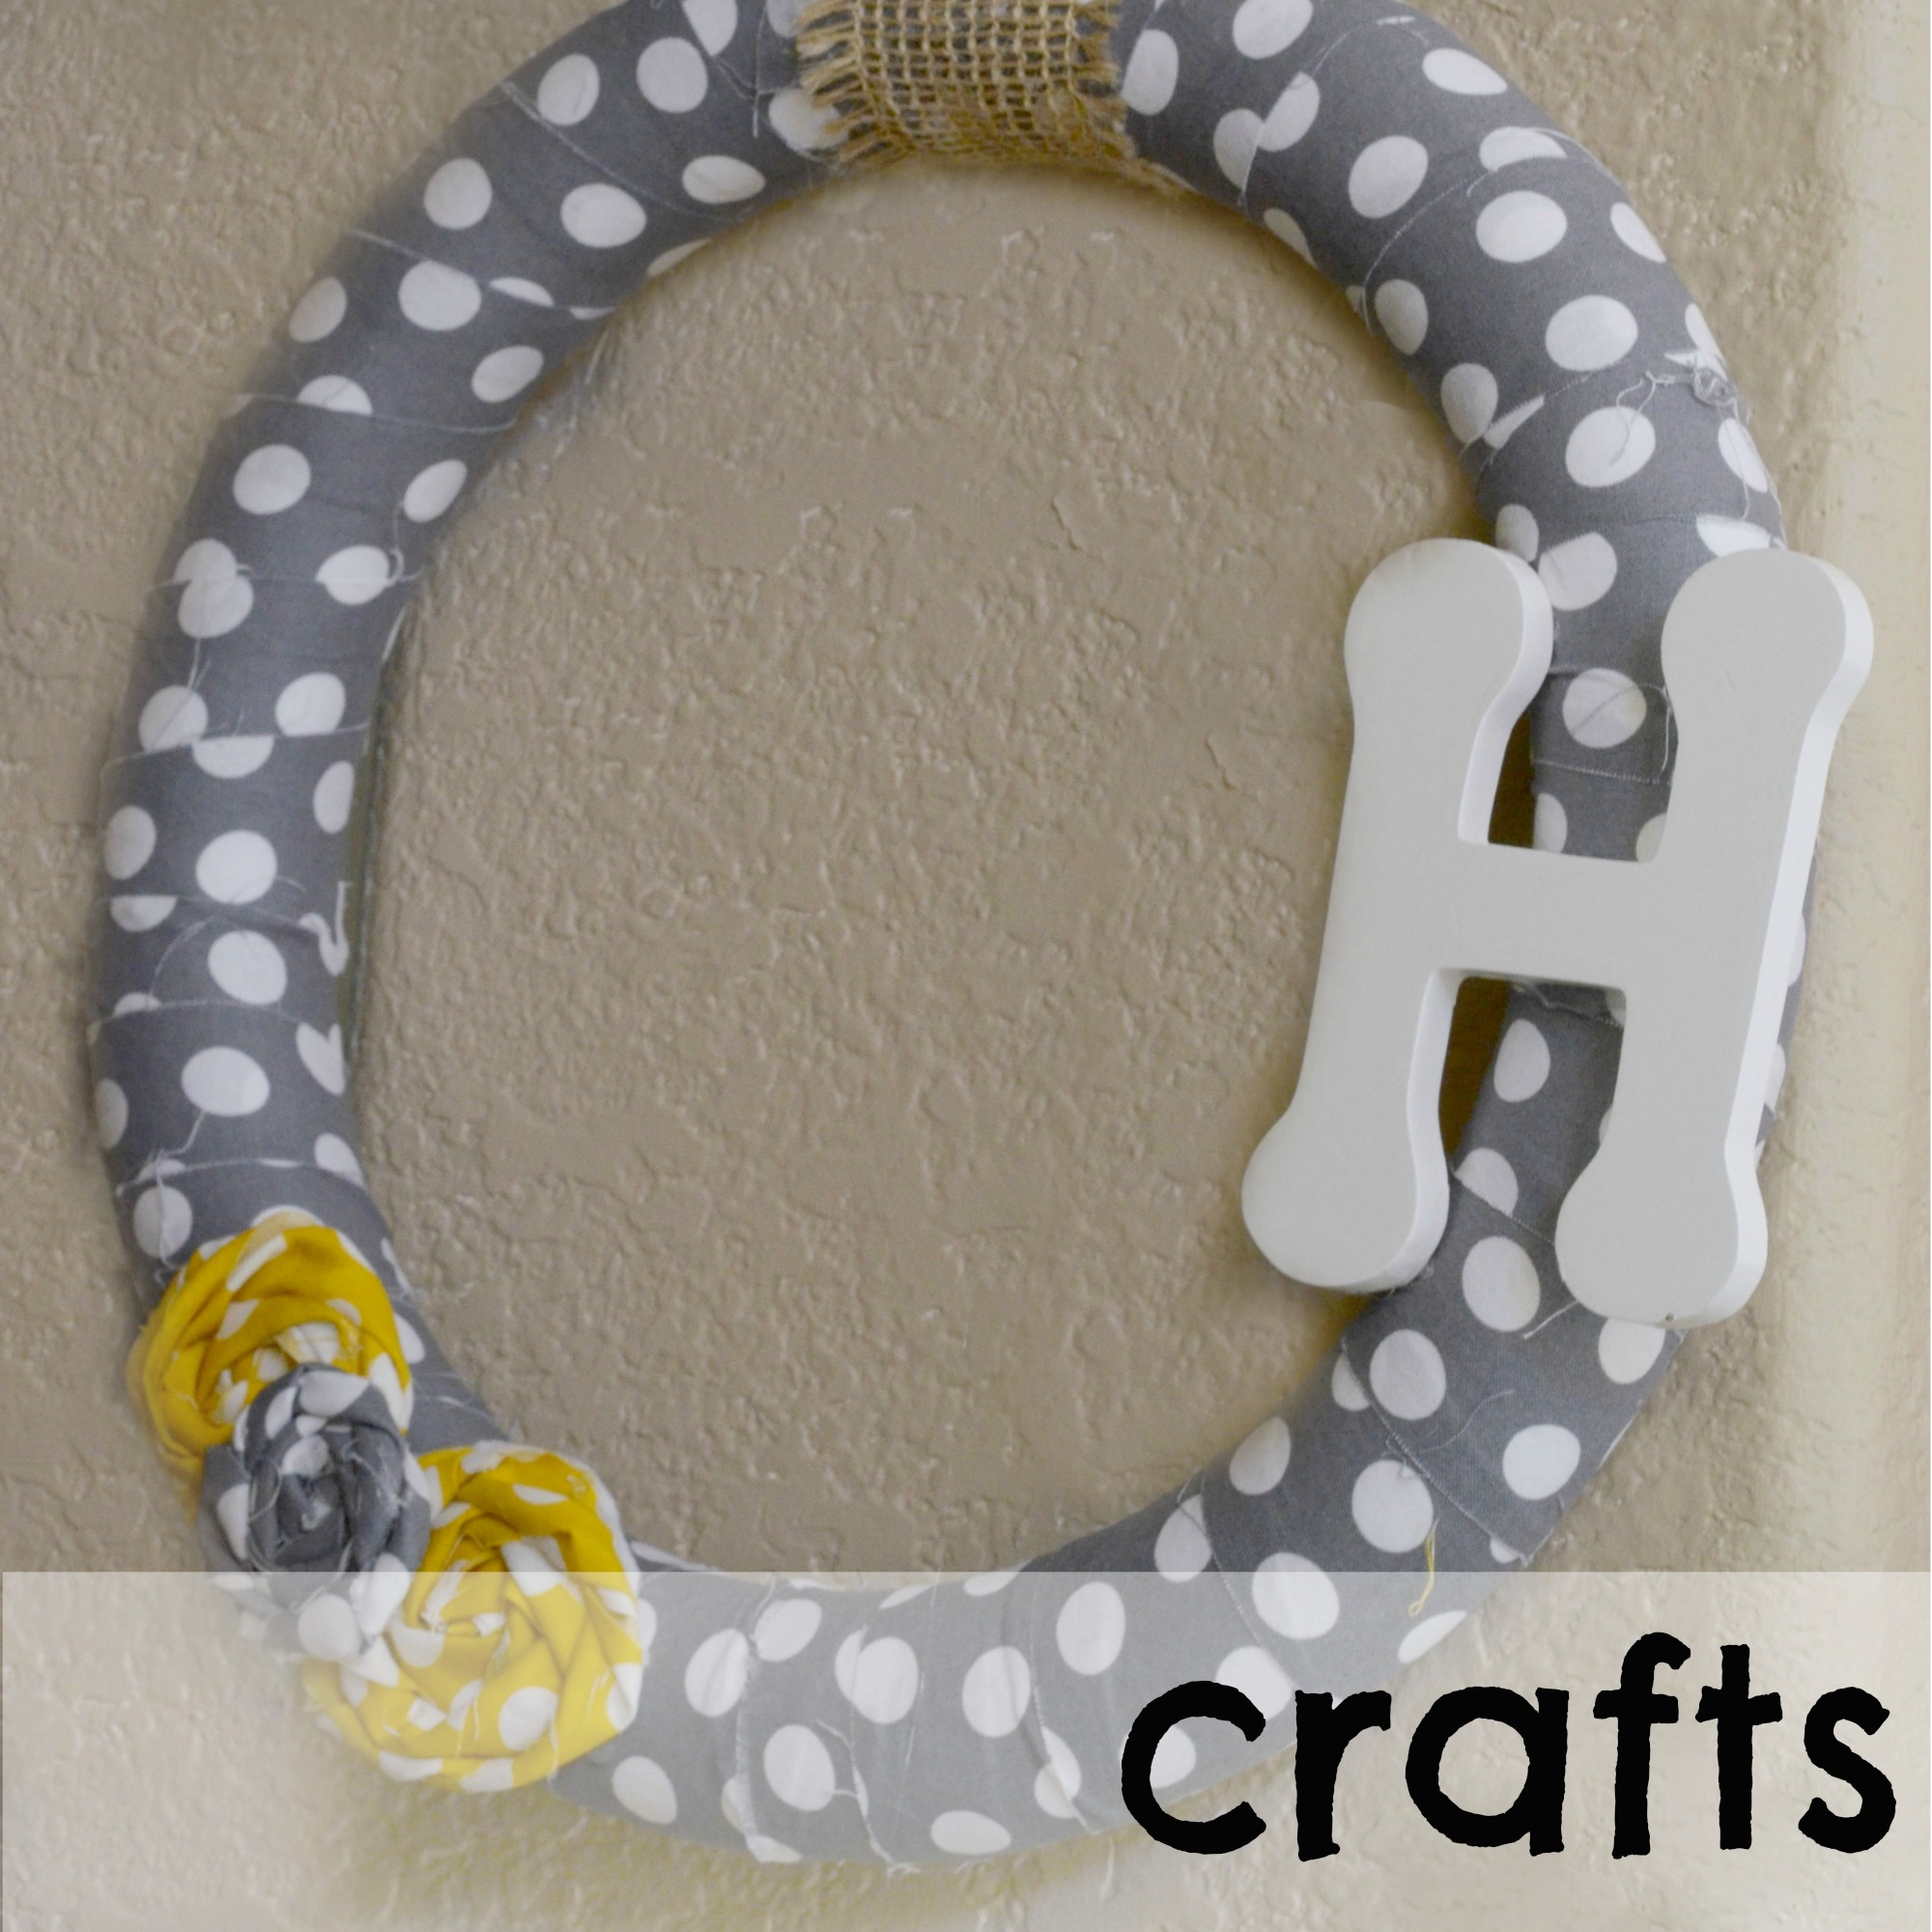 crafts & DIY button